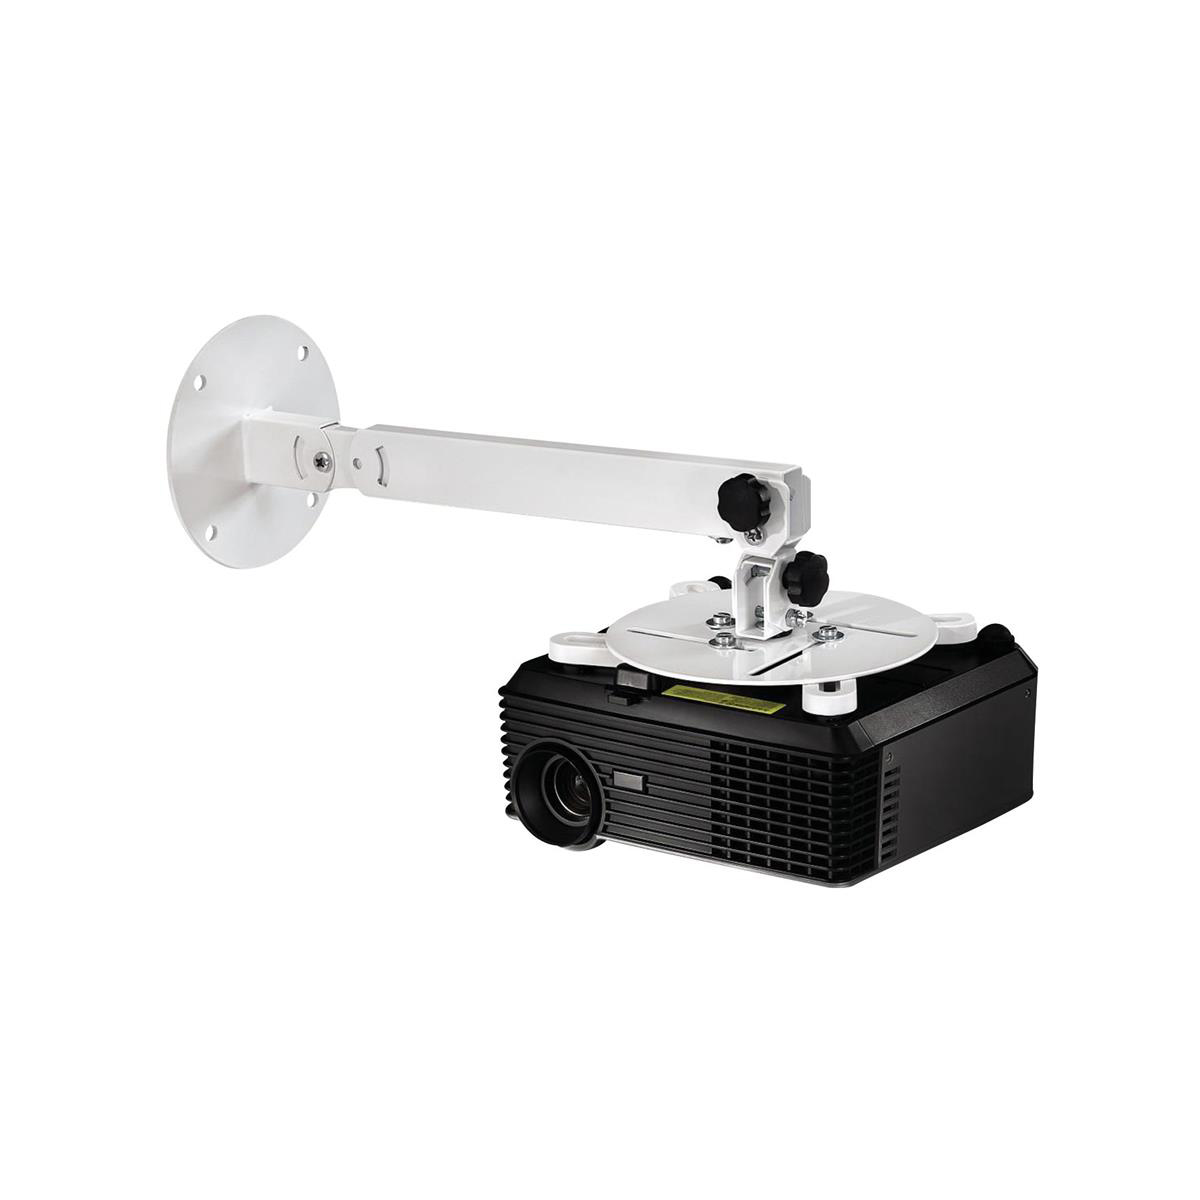 Hama Projector Mount for Wall/Ceiling Ref 84422